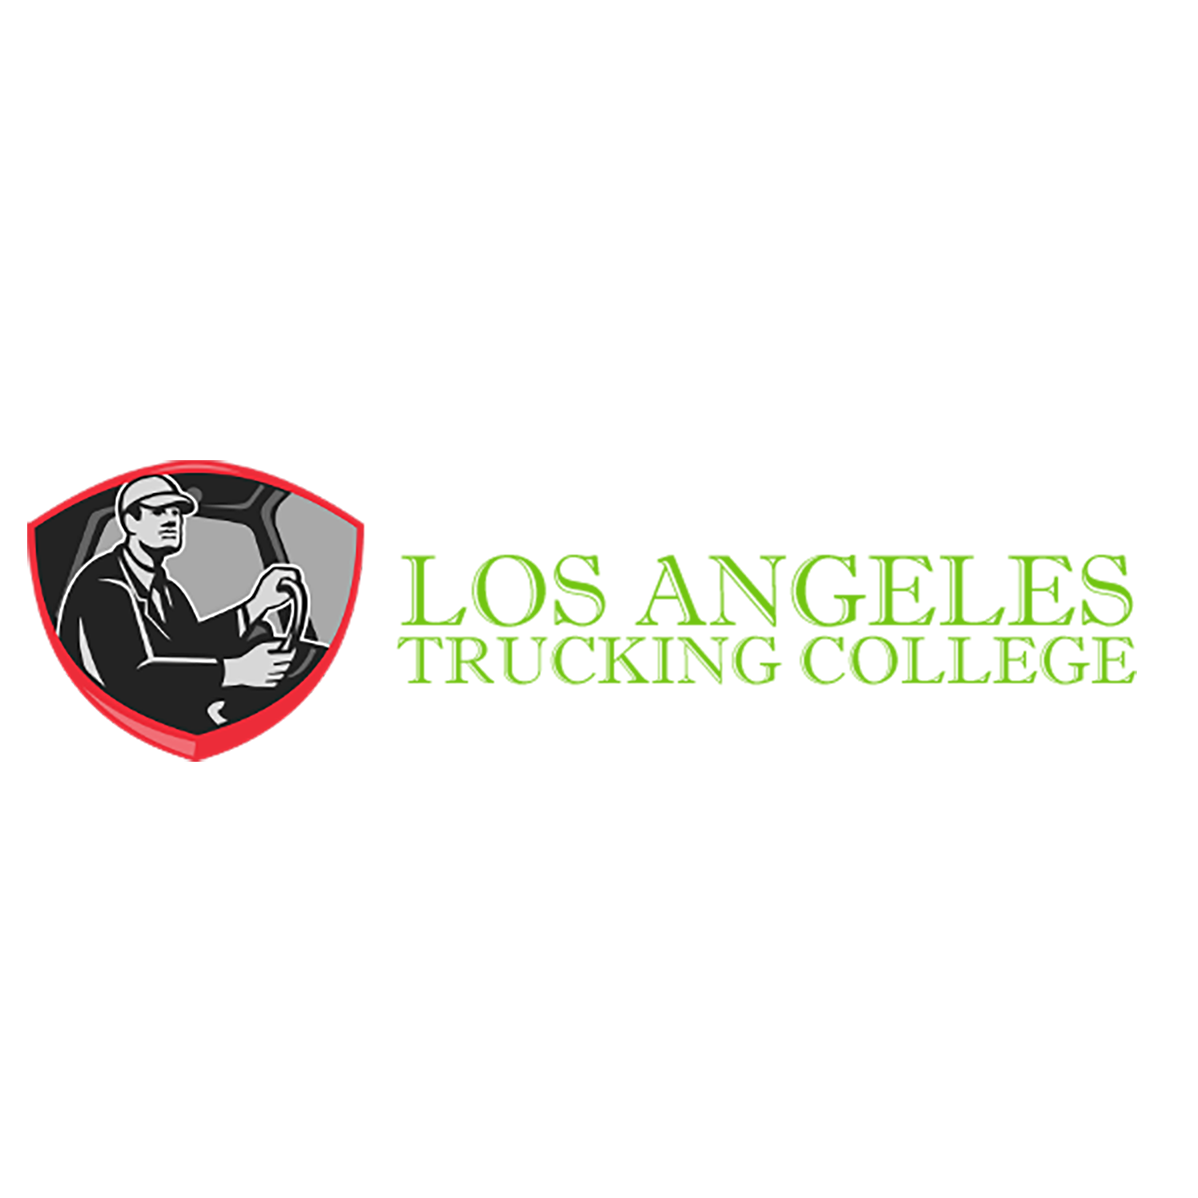 Los Angeles Trucking College